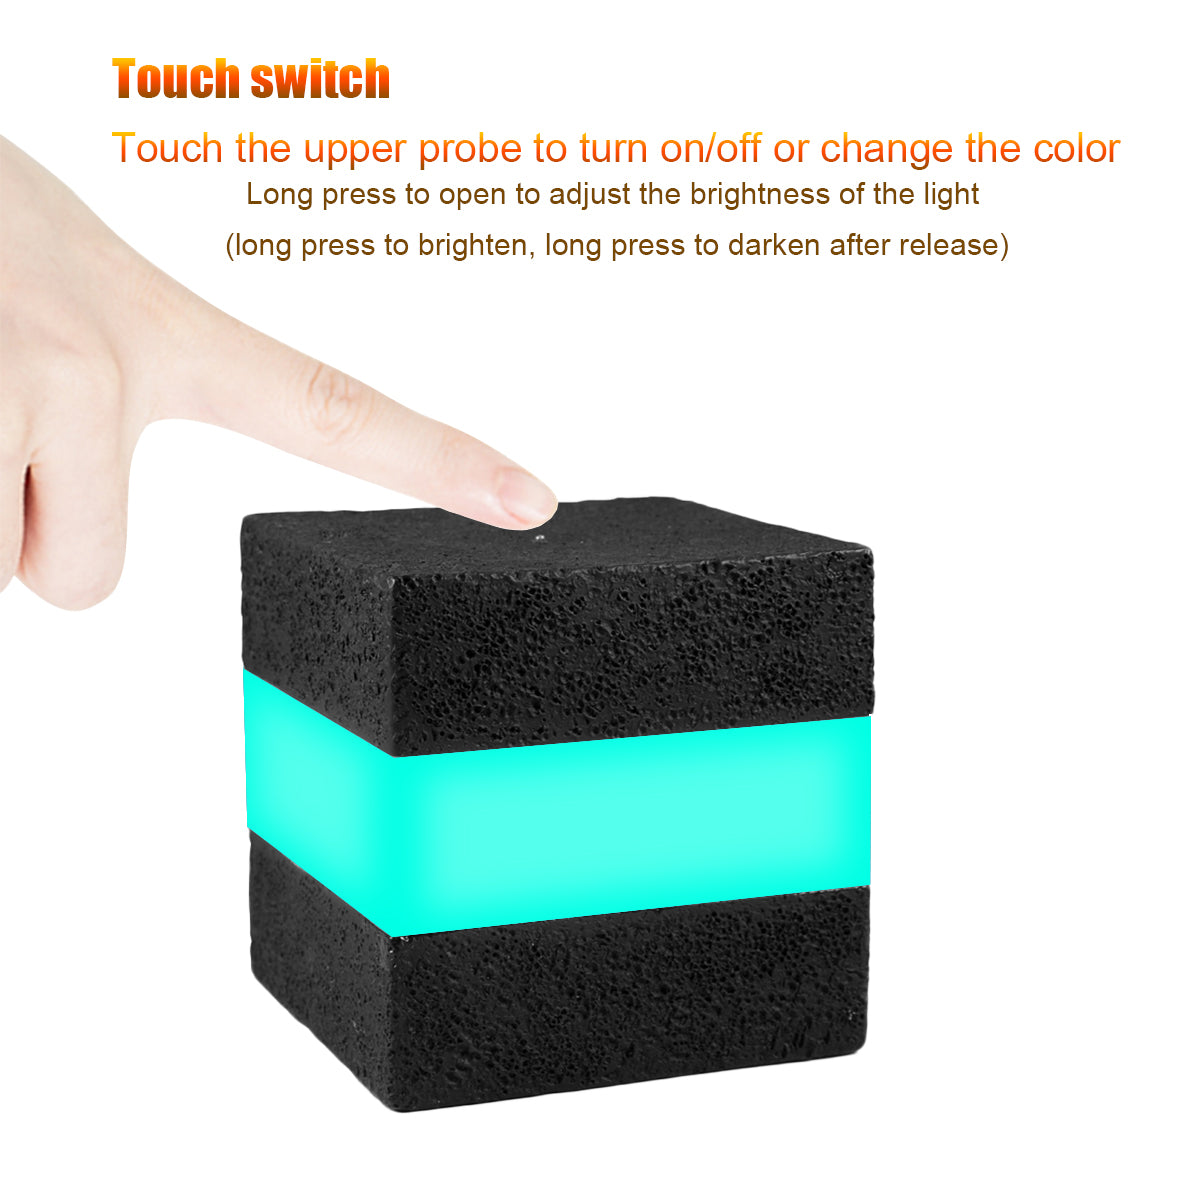 16 RGB Colors Cool Cosmic Cube Lights MCU Tesseract Mood Lamp IP65 Waterproof USB Charging Beside Desk Lamp for Kids Nursery and Toys